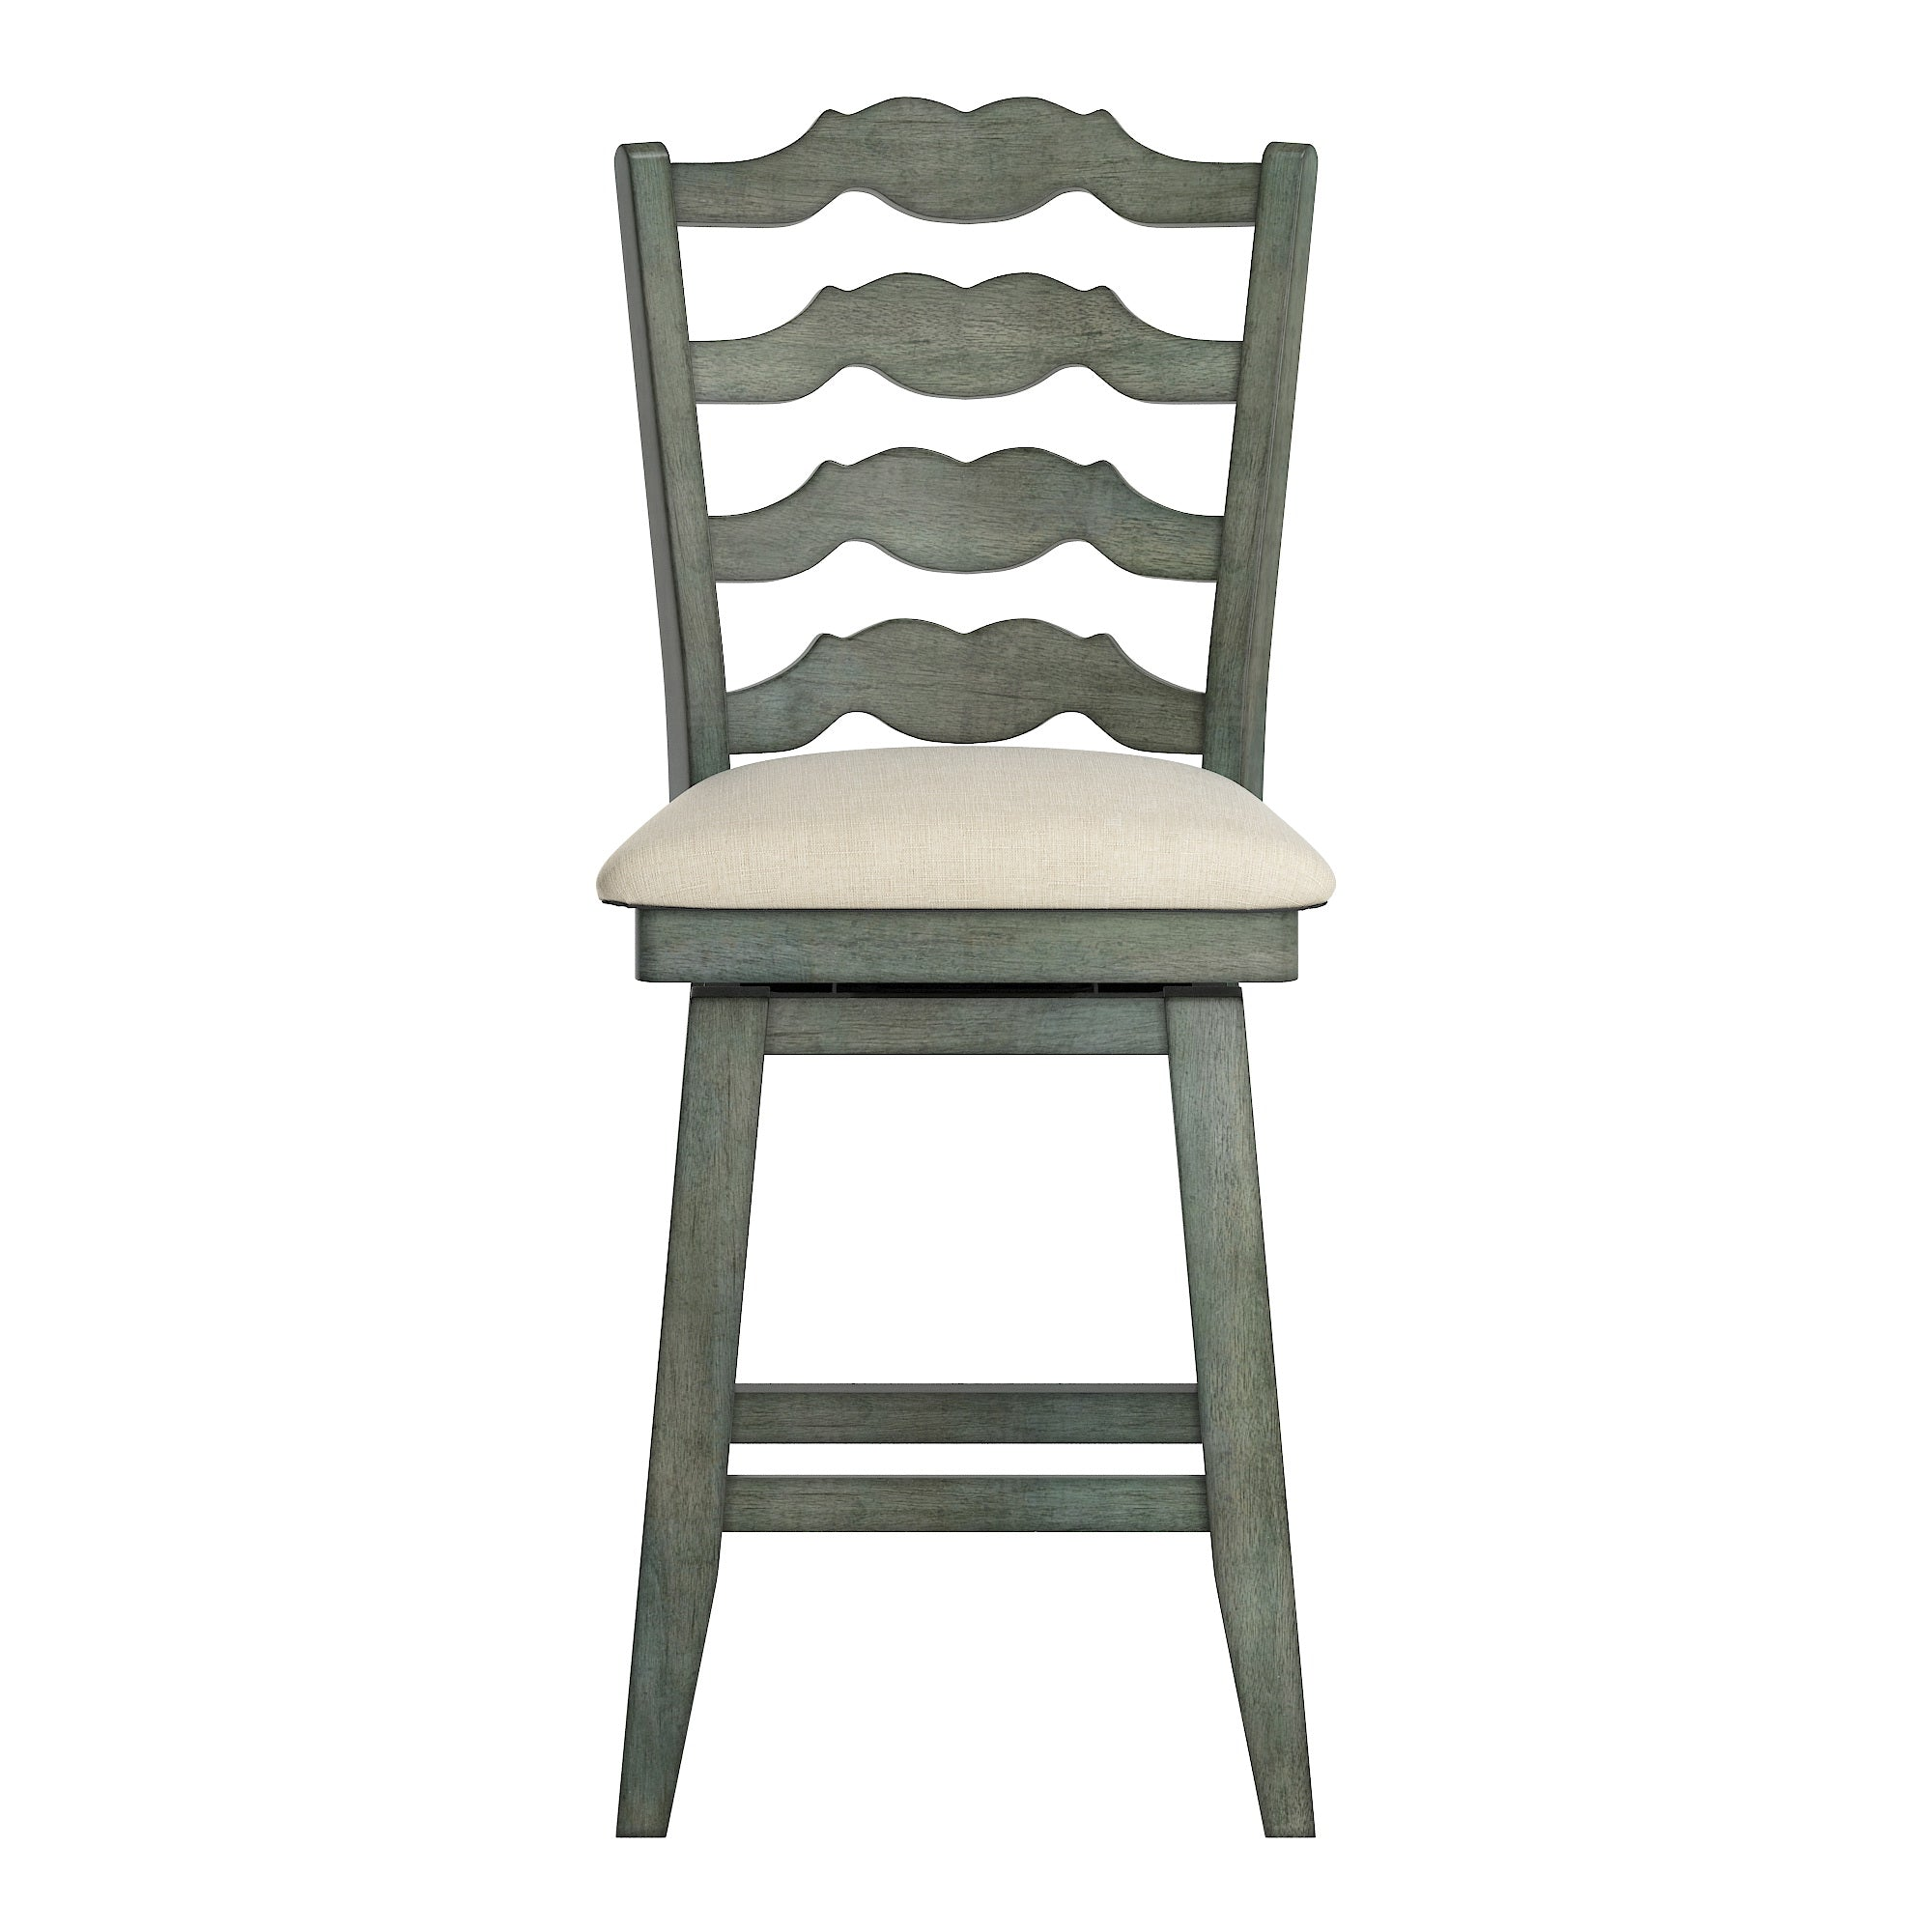 French Ladder Back Counter Height Swivel Chair - Antique Sage